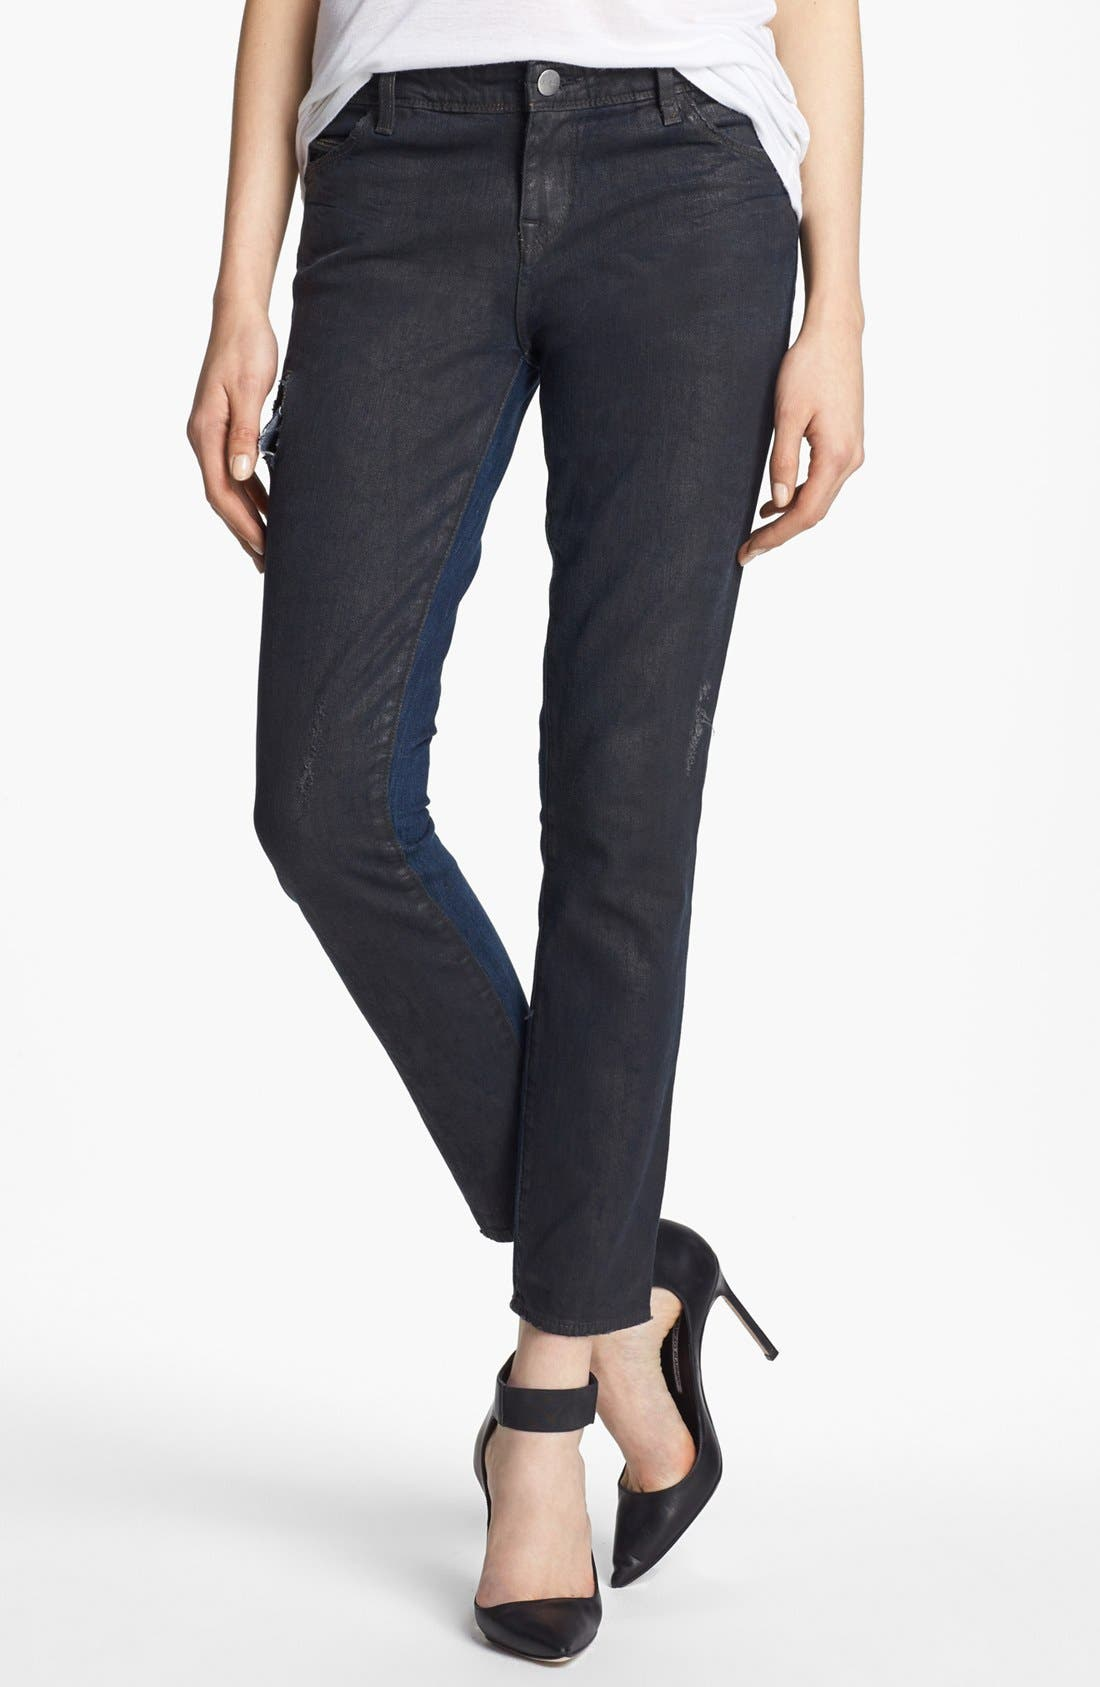 Alternate Image 1 Selected - EACH X OTHER Waxed Two Tone Boyfriend Jeans